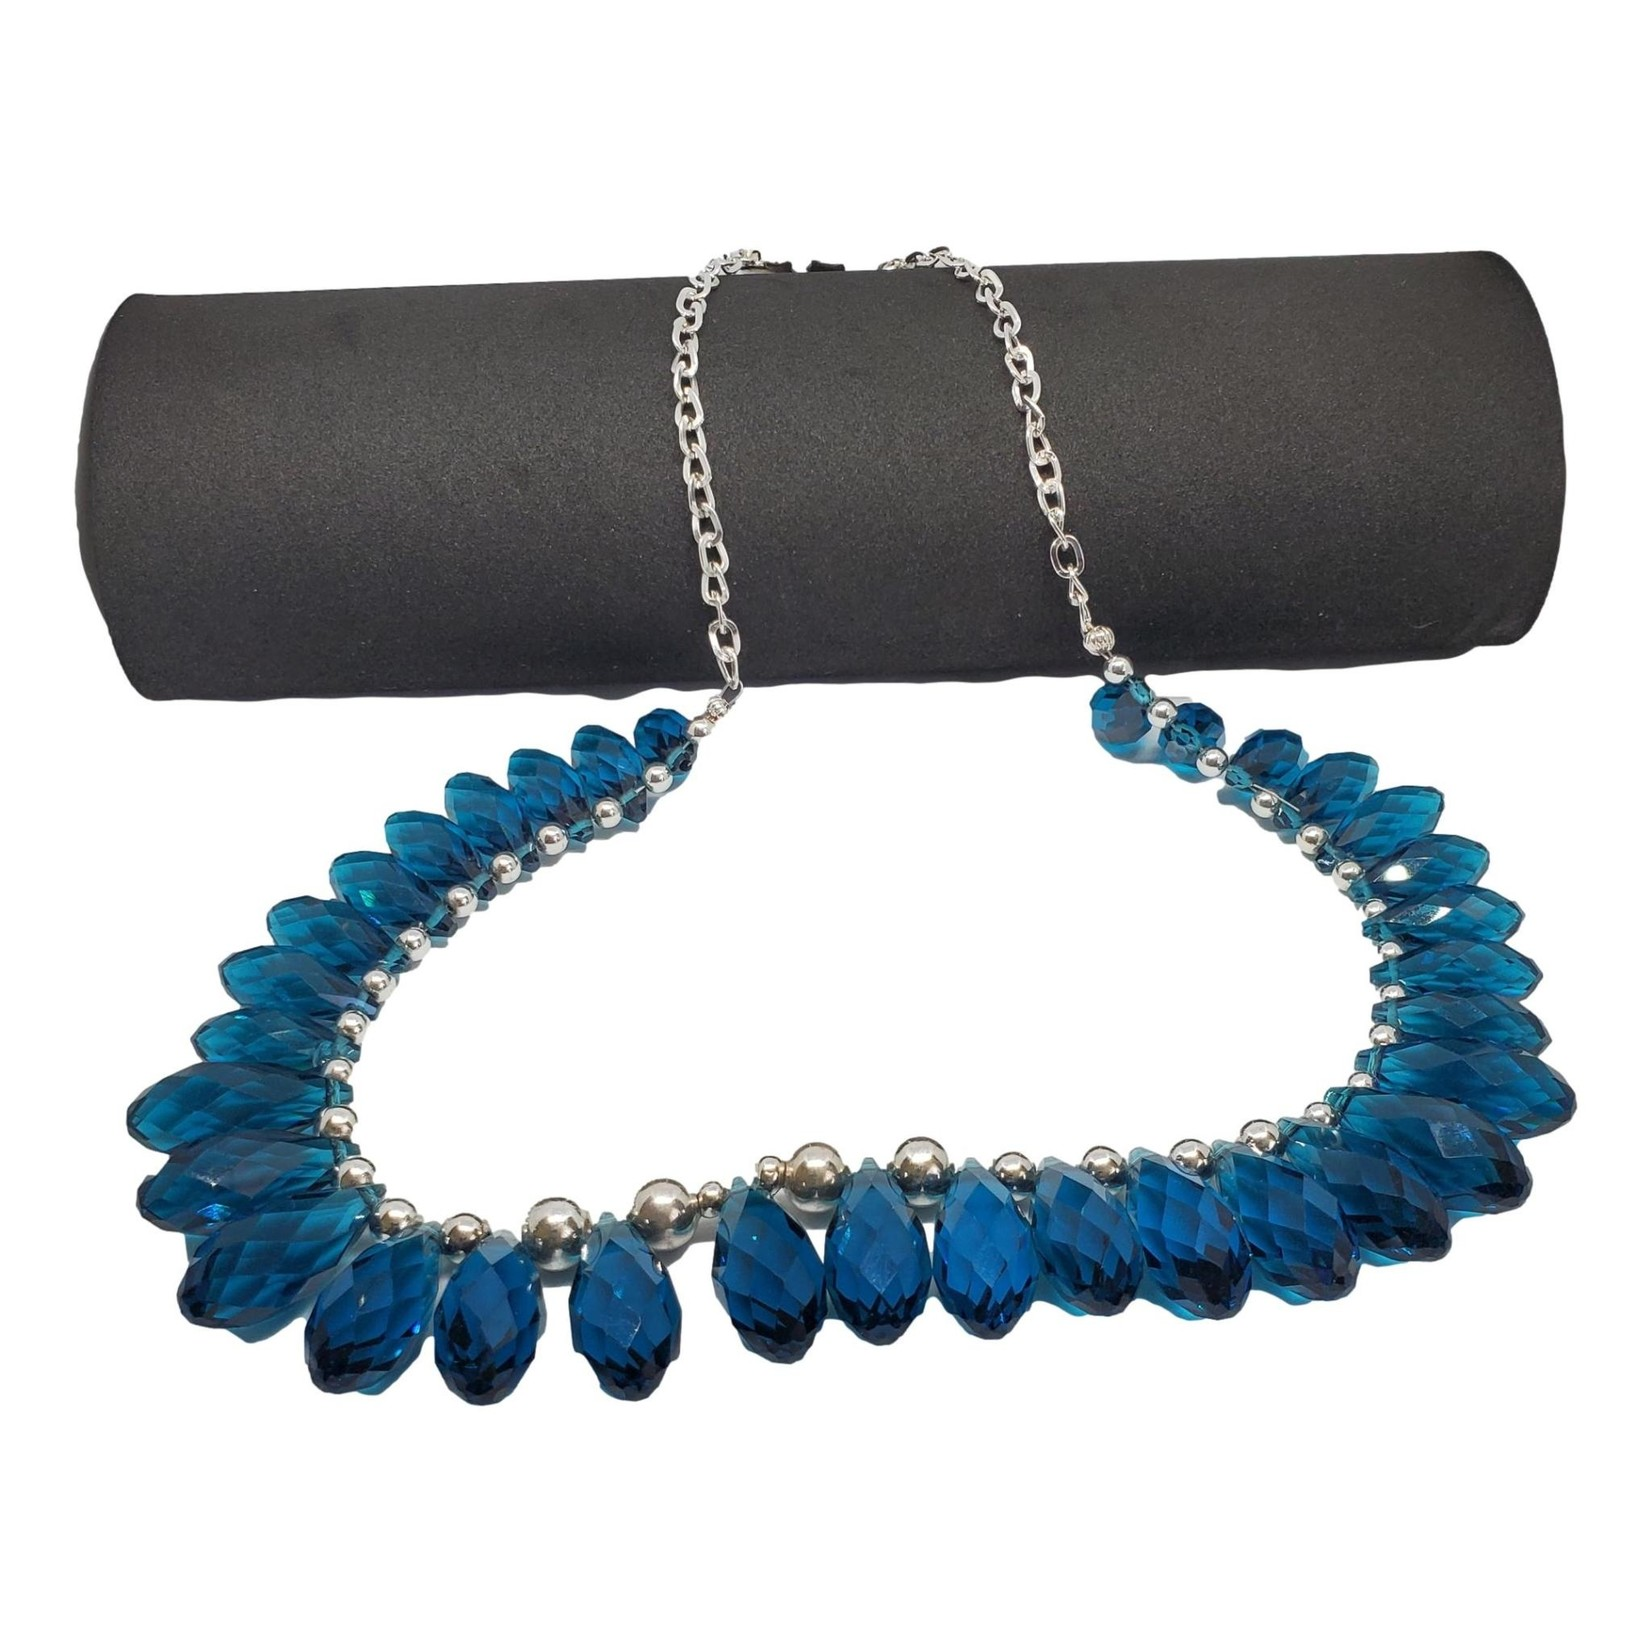 Jewellery by Deborah Young-Groves Silver-toned Necklace with Blue Glass Drop Stones